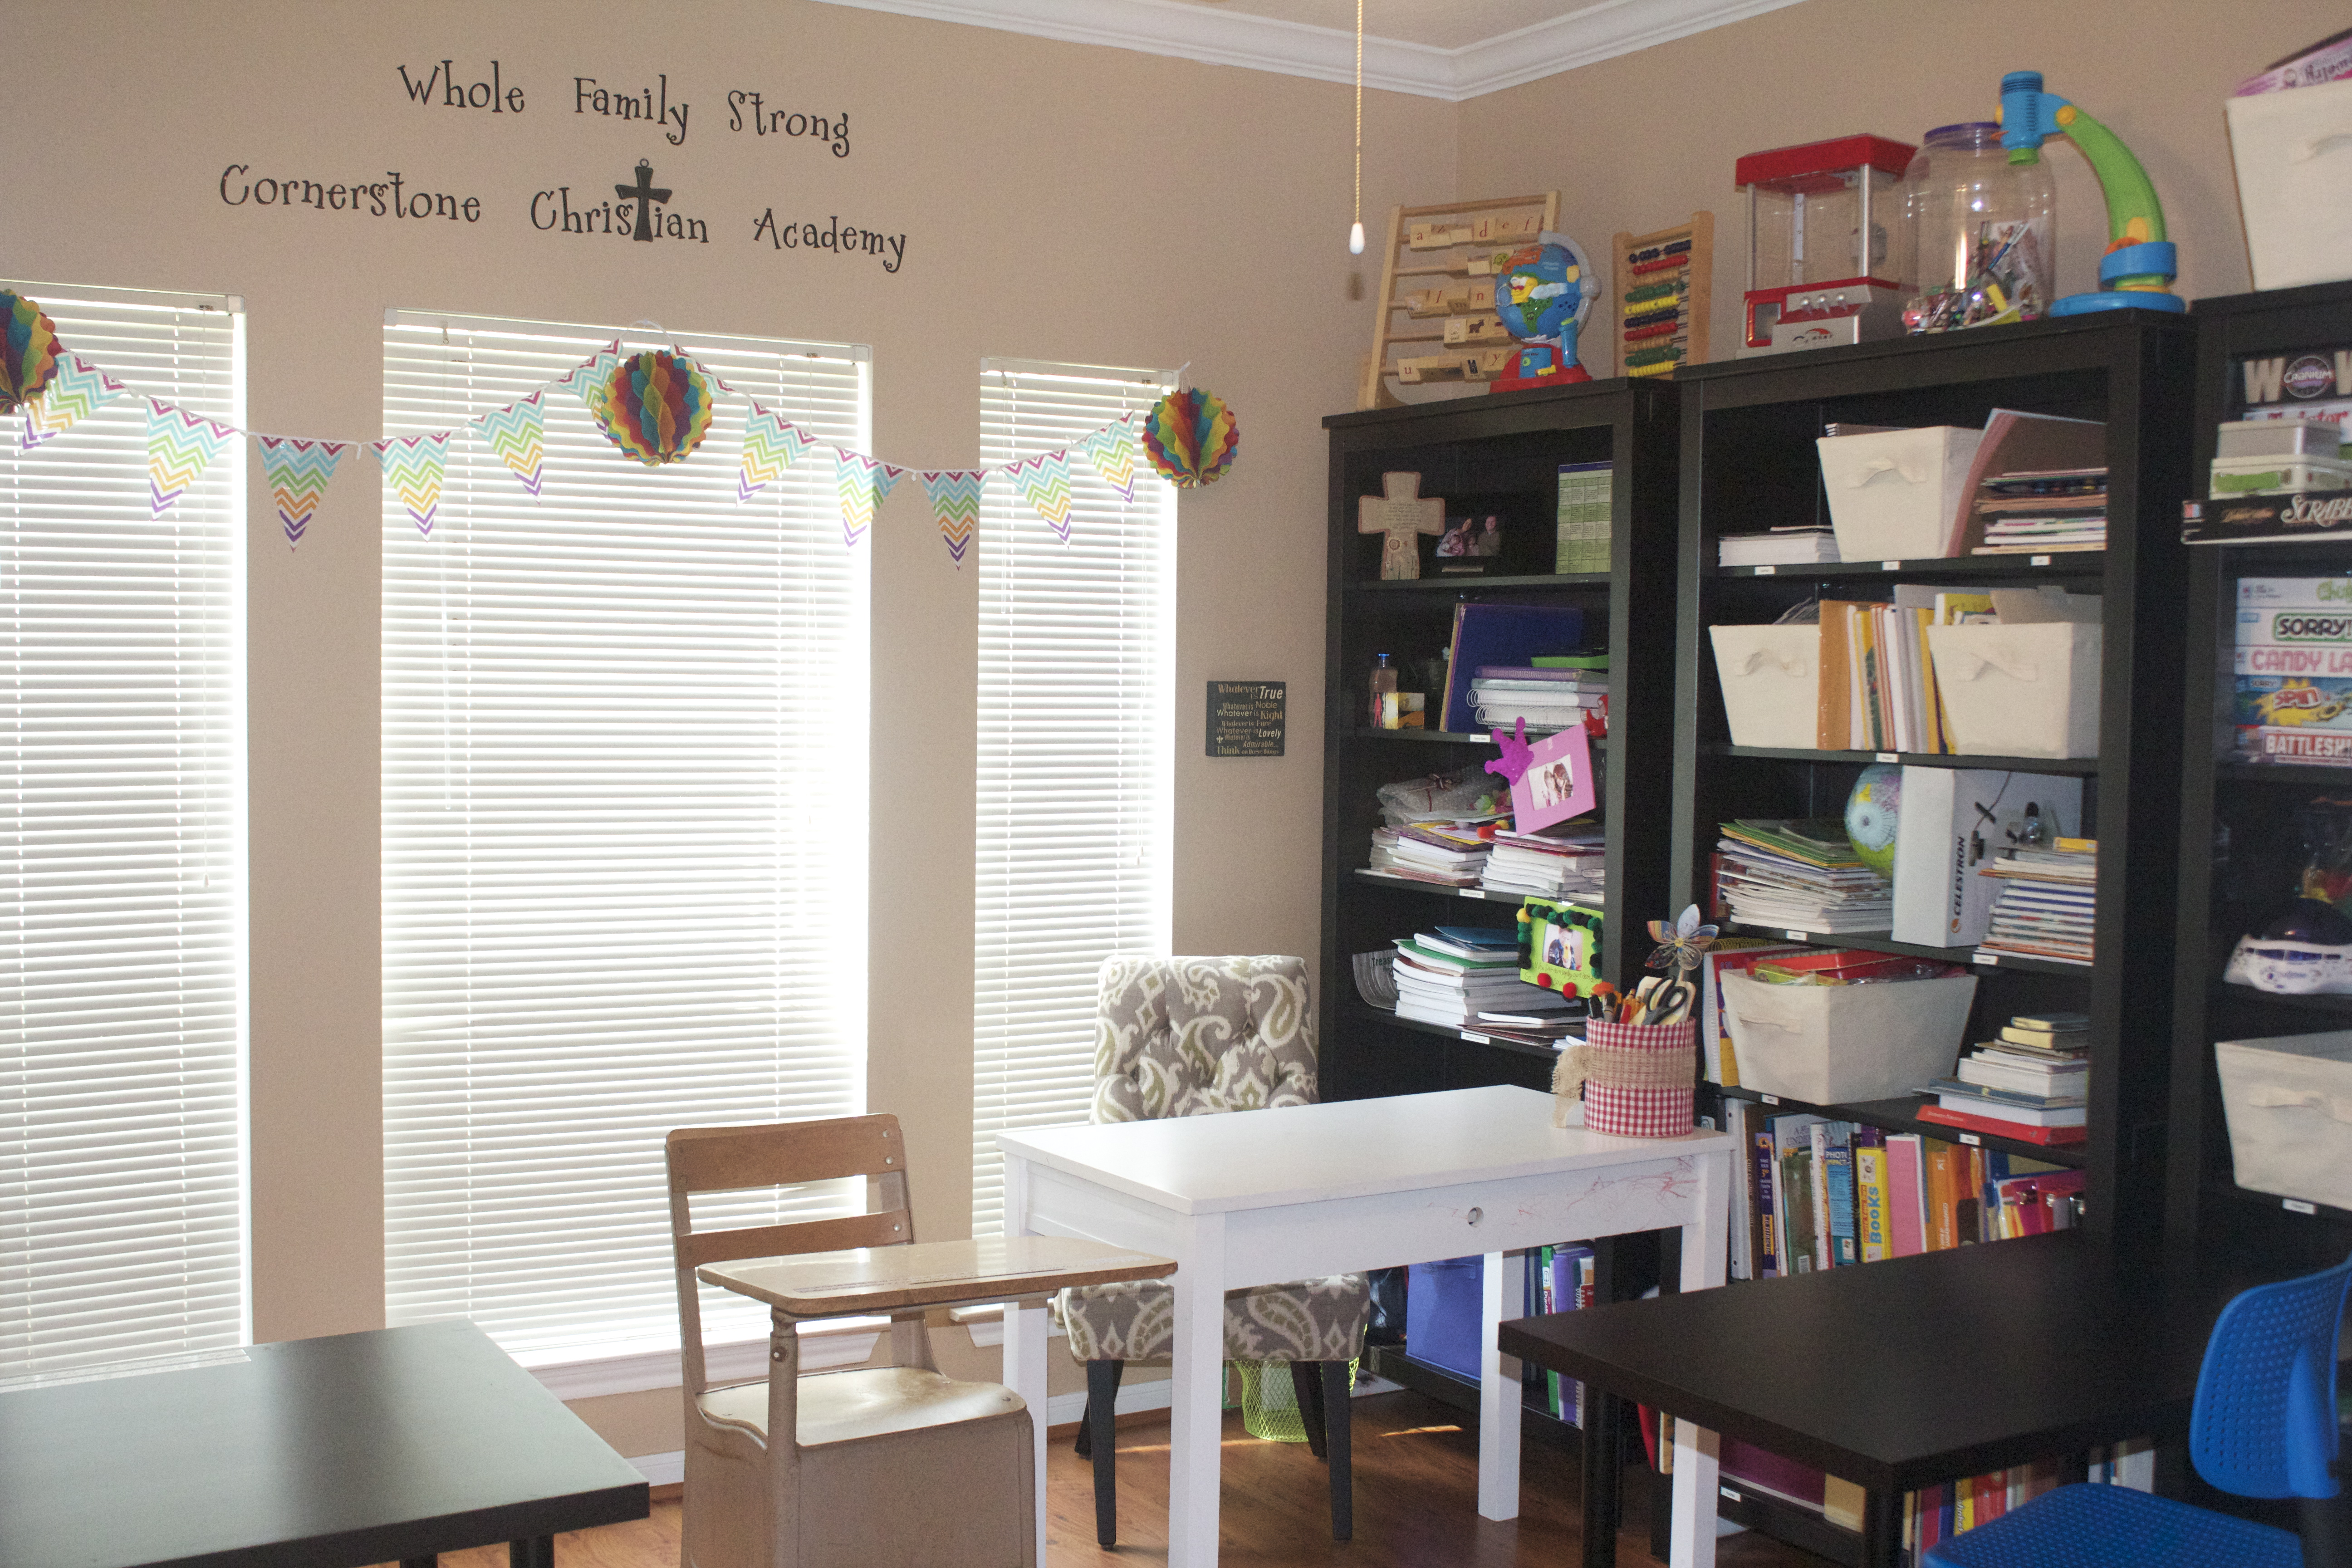 Whole Family Our Homeschool Room Whole Family Strong